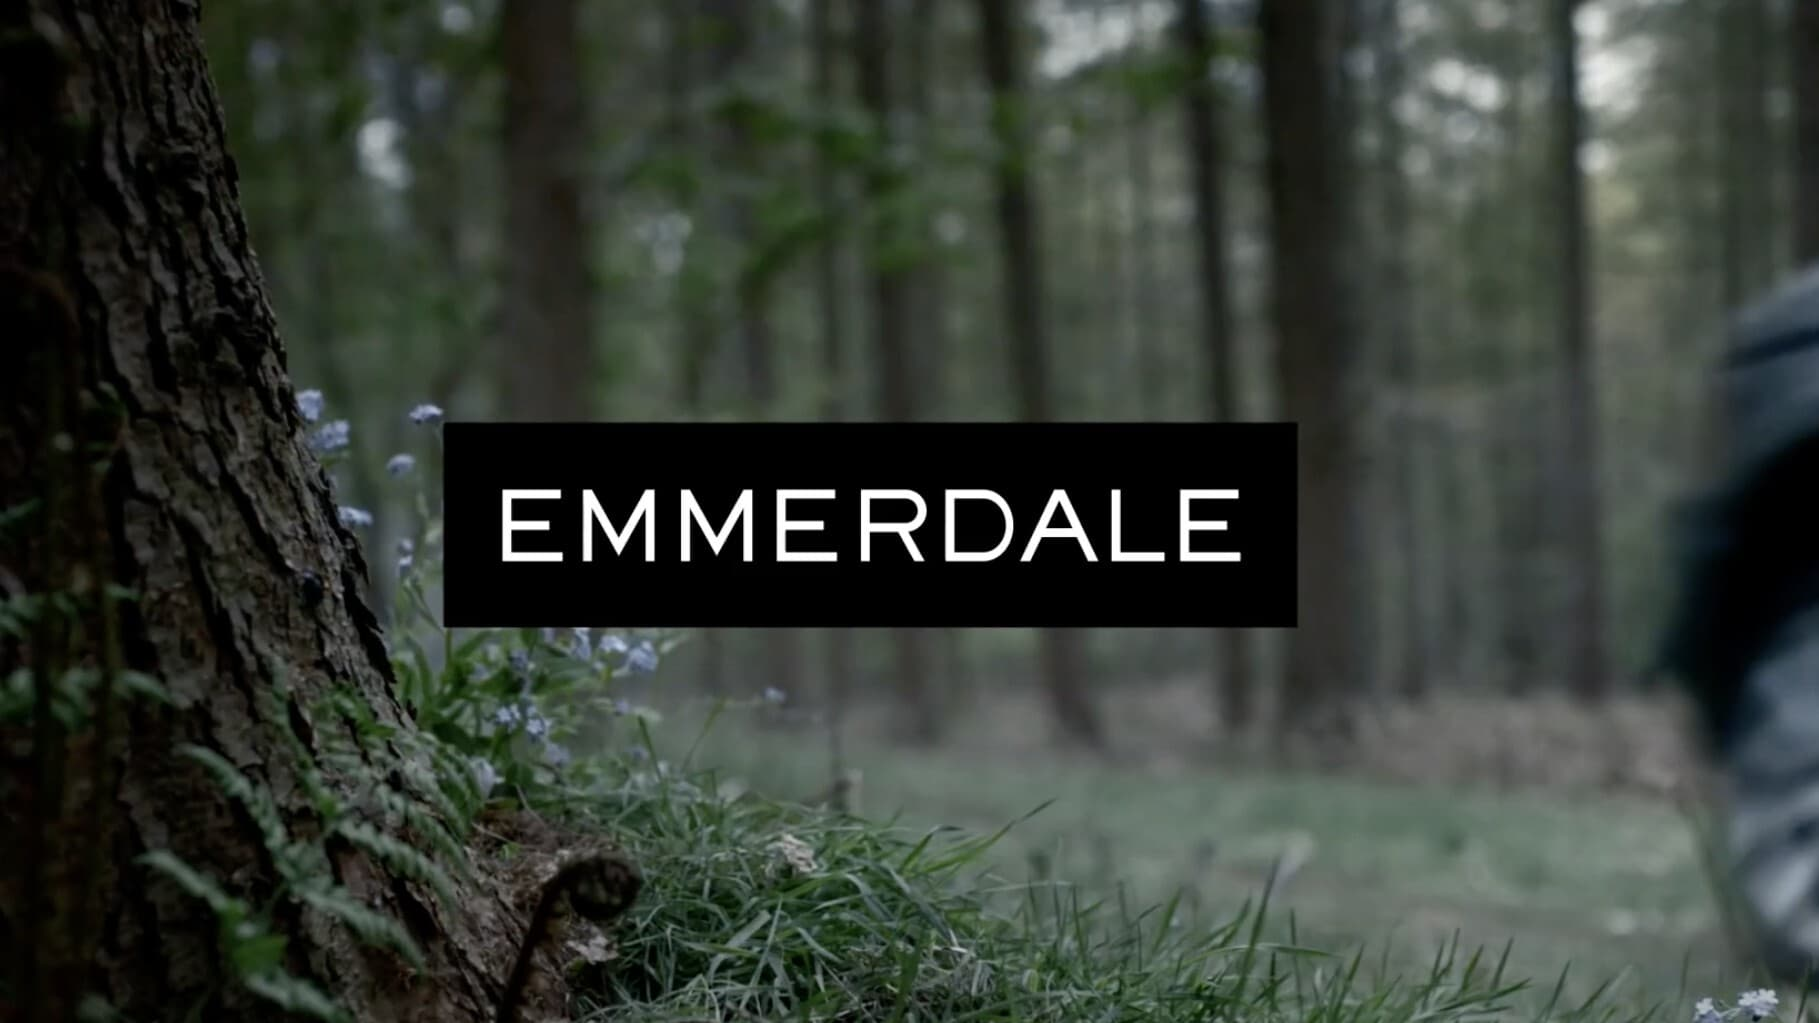 Emmerdale - Season 36 Episode 2 : January 2, 2007